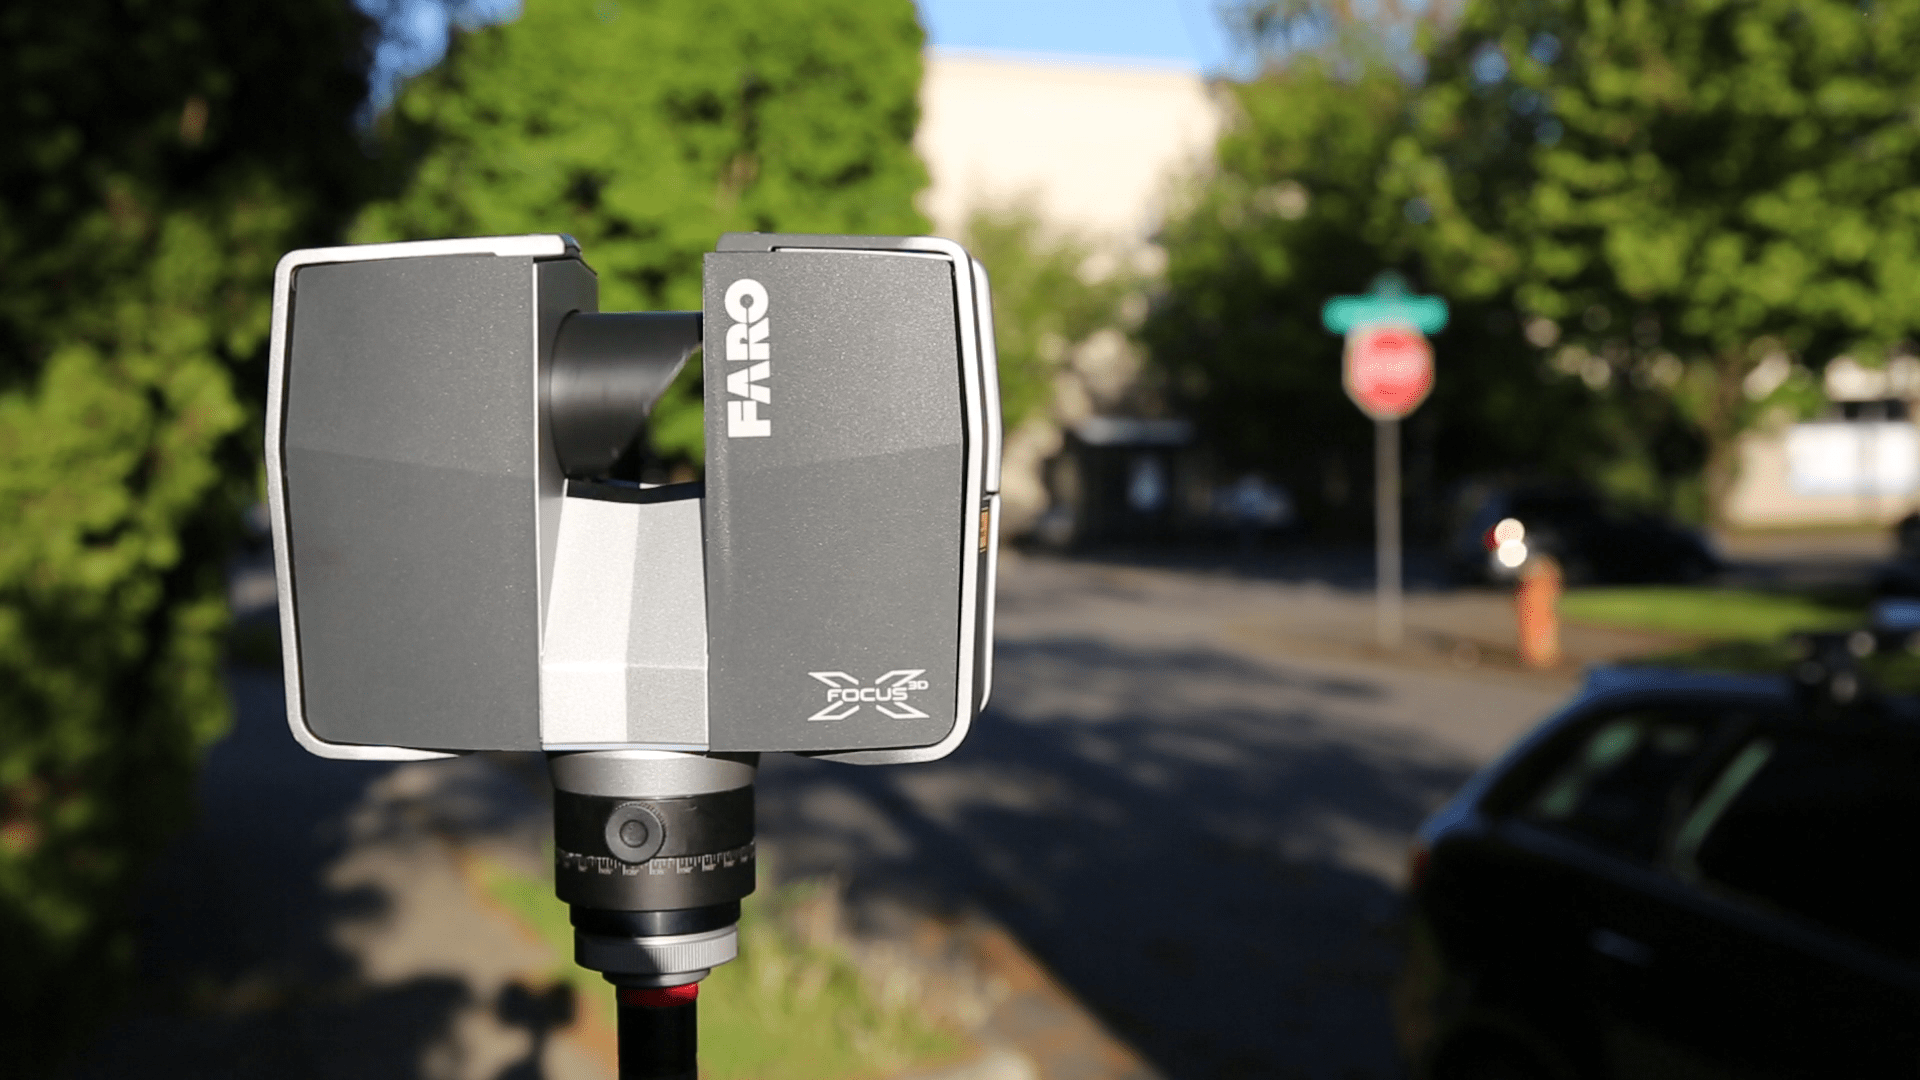 FARO 3D Laser Scanner for Documenting scenes and geometry